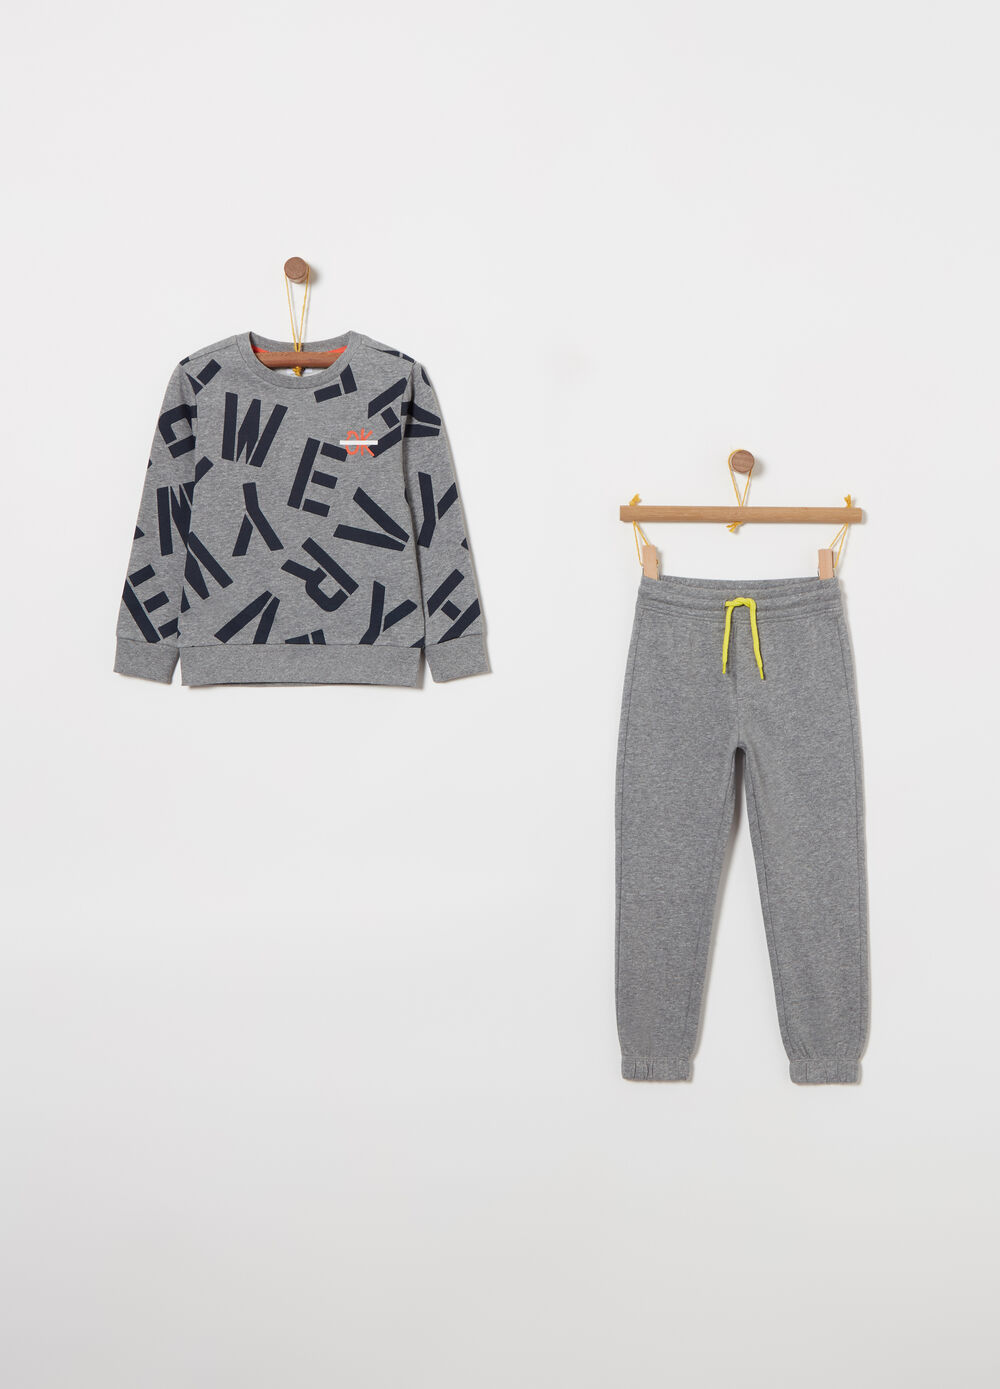 Fleece jogging set with top and all-over pattern